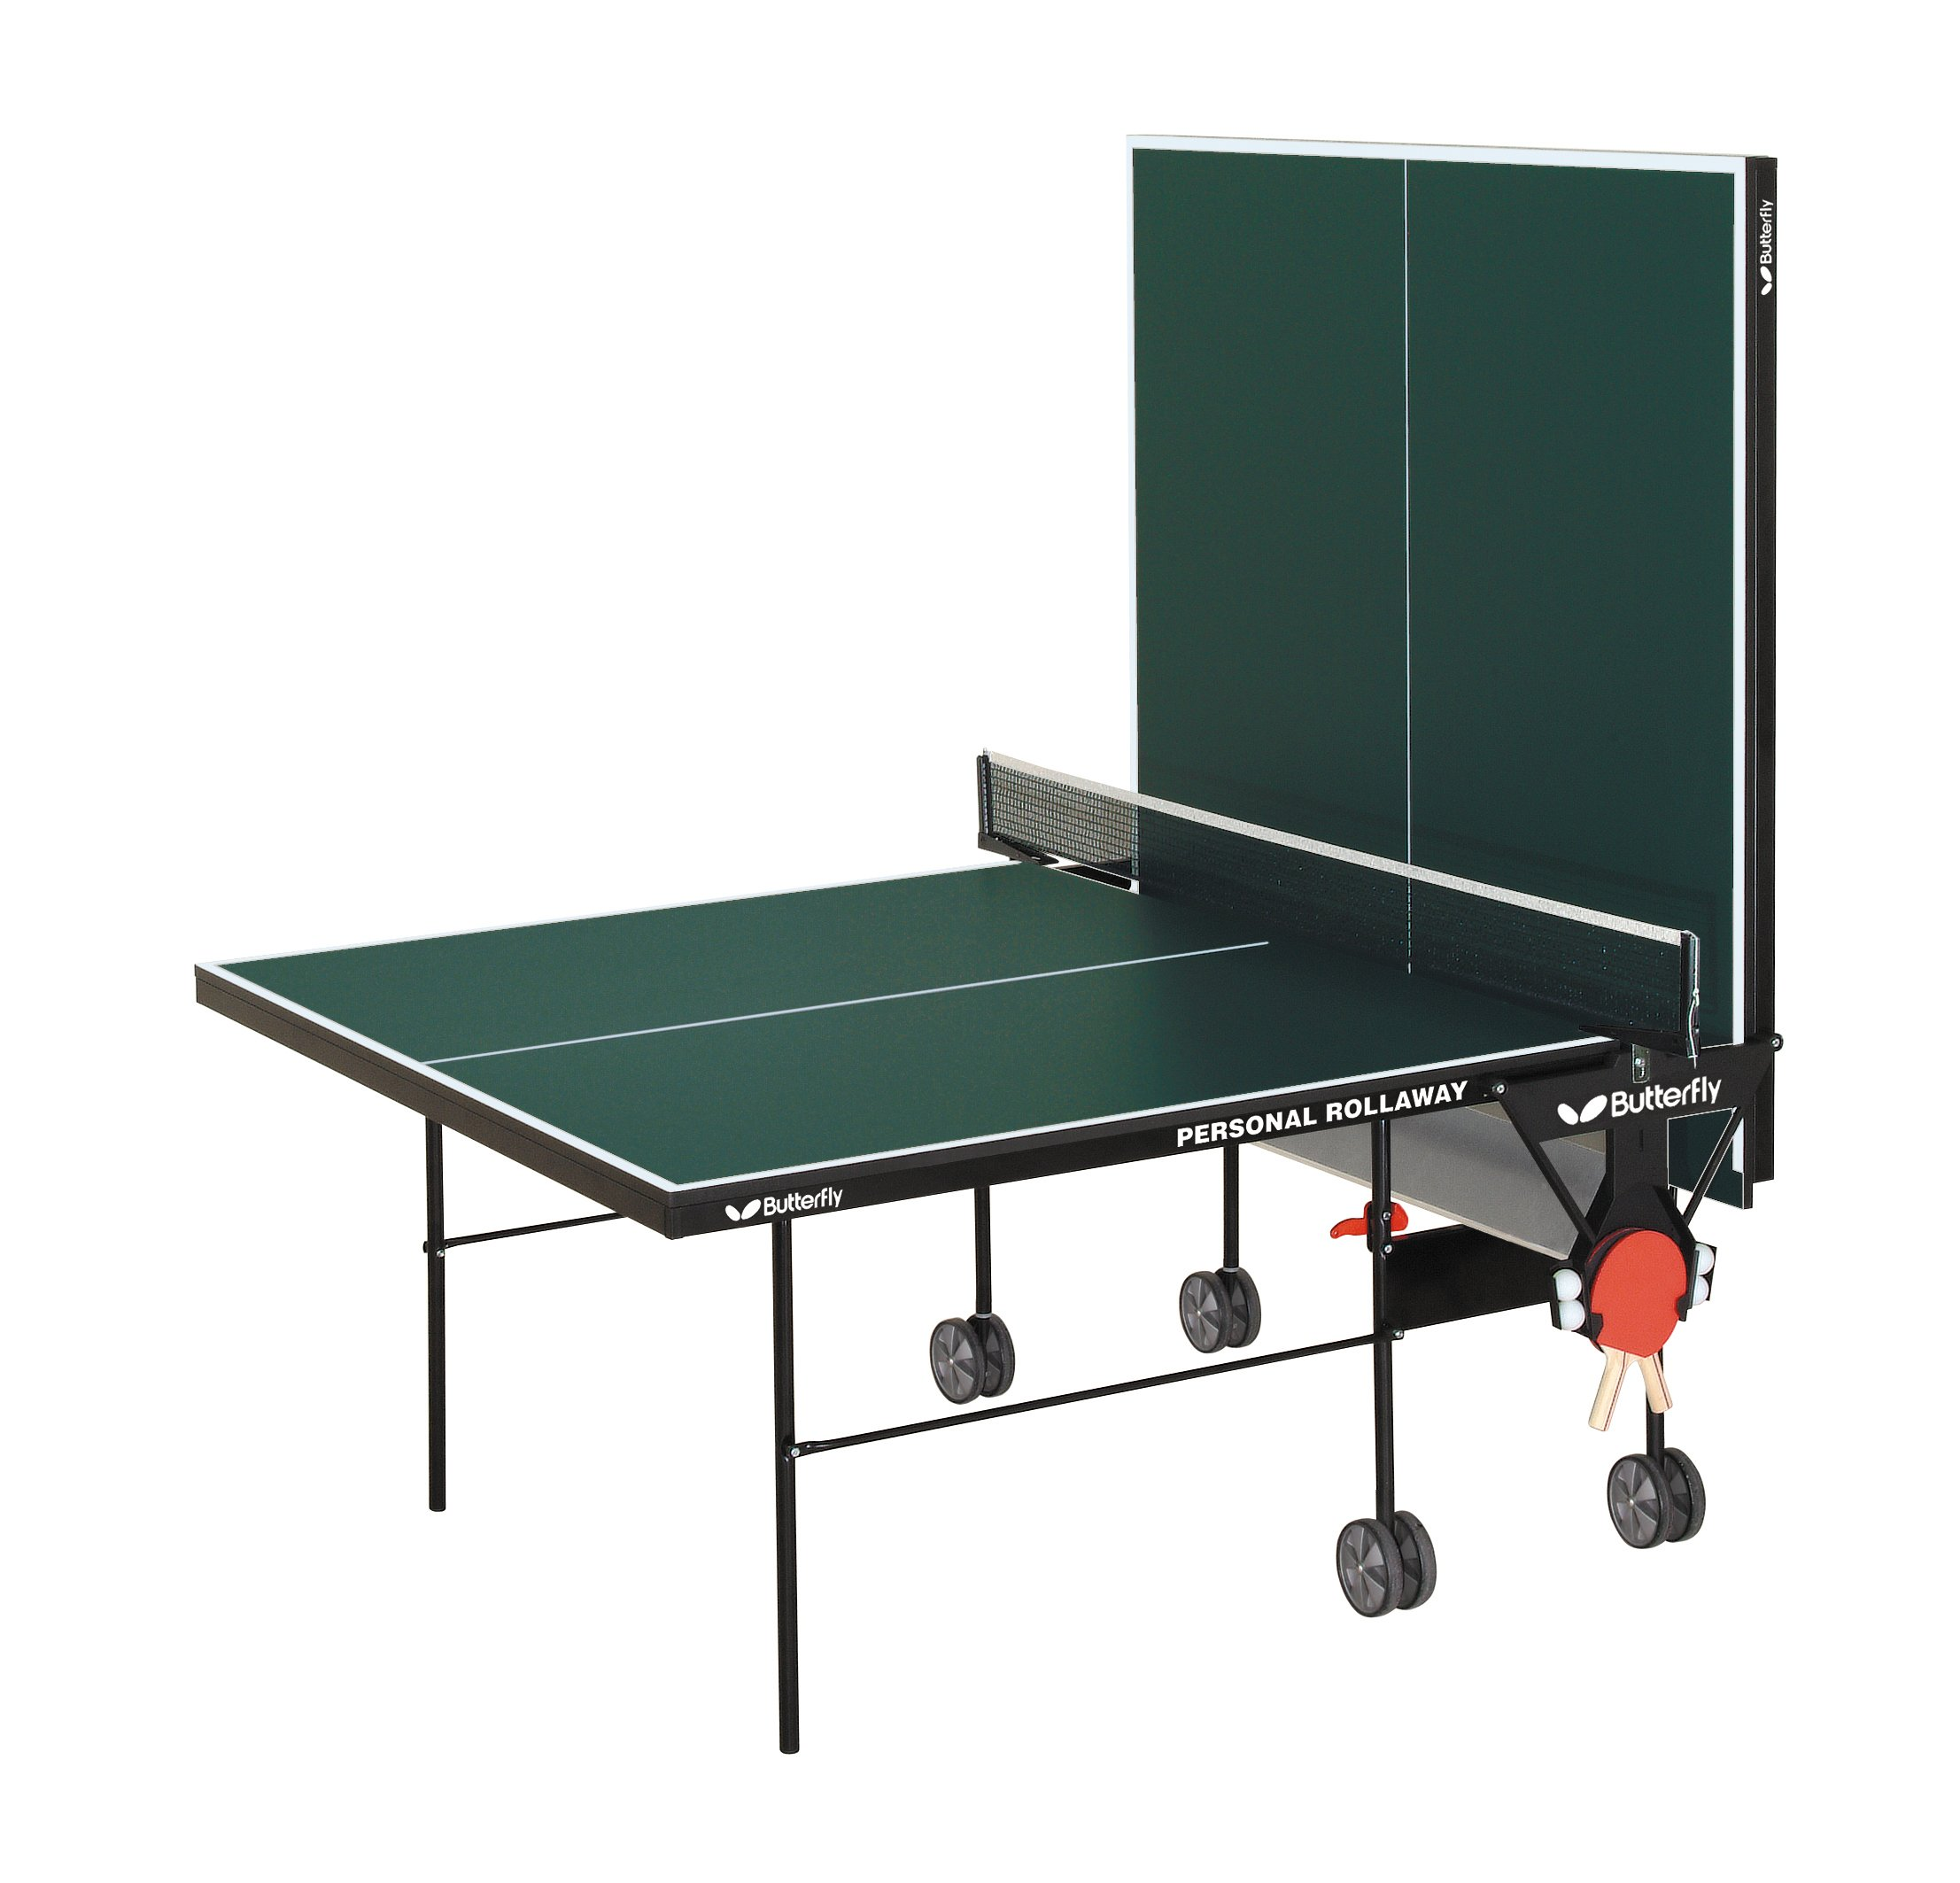 Butterfly TR21 Personal Rollaway Table Tennis Table (Green) by Butterfly